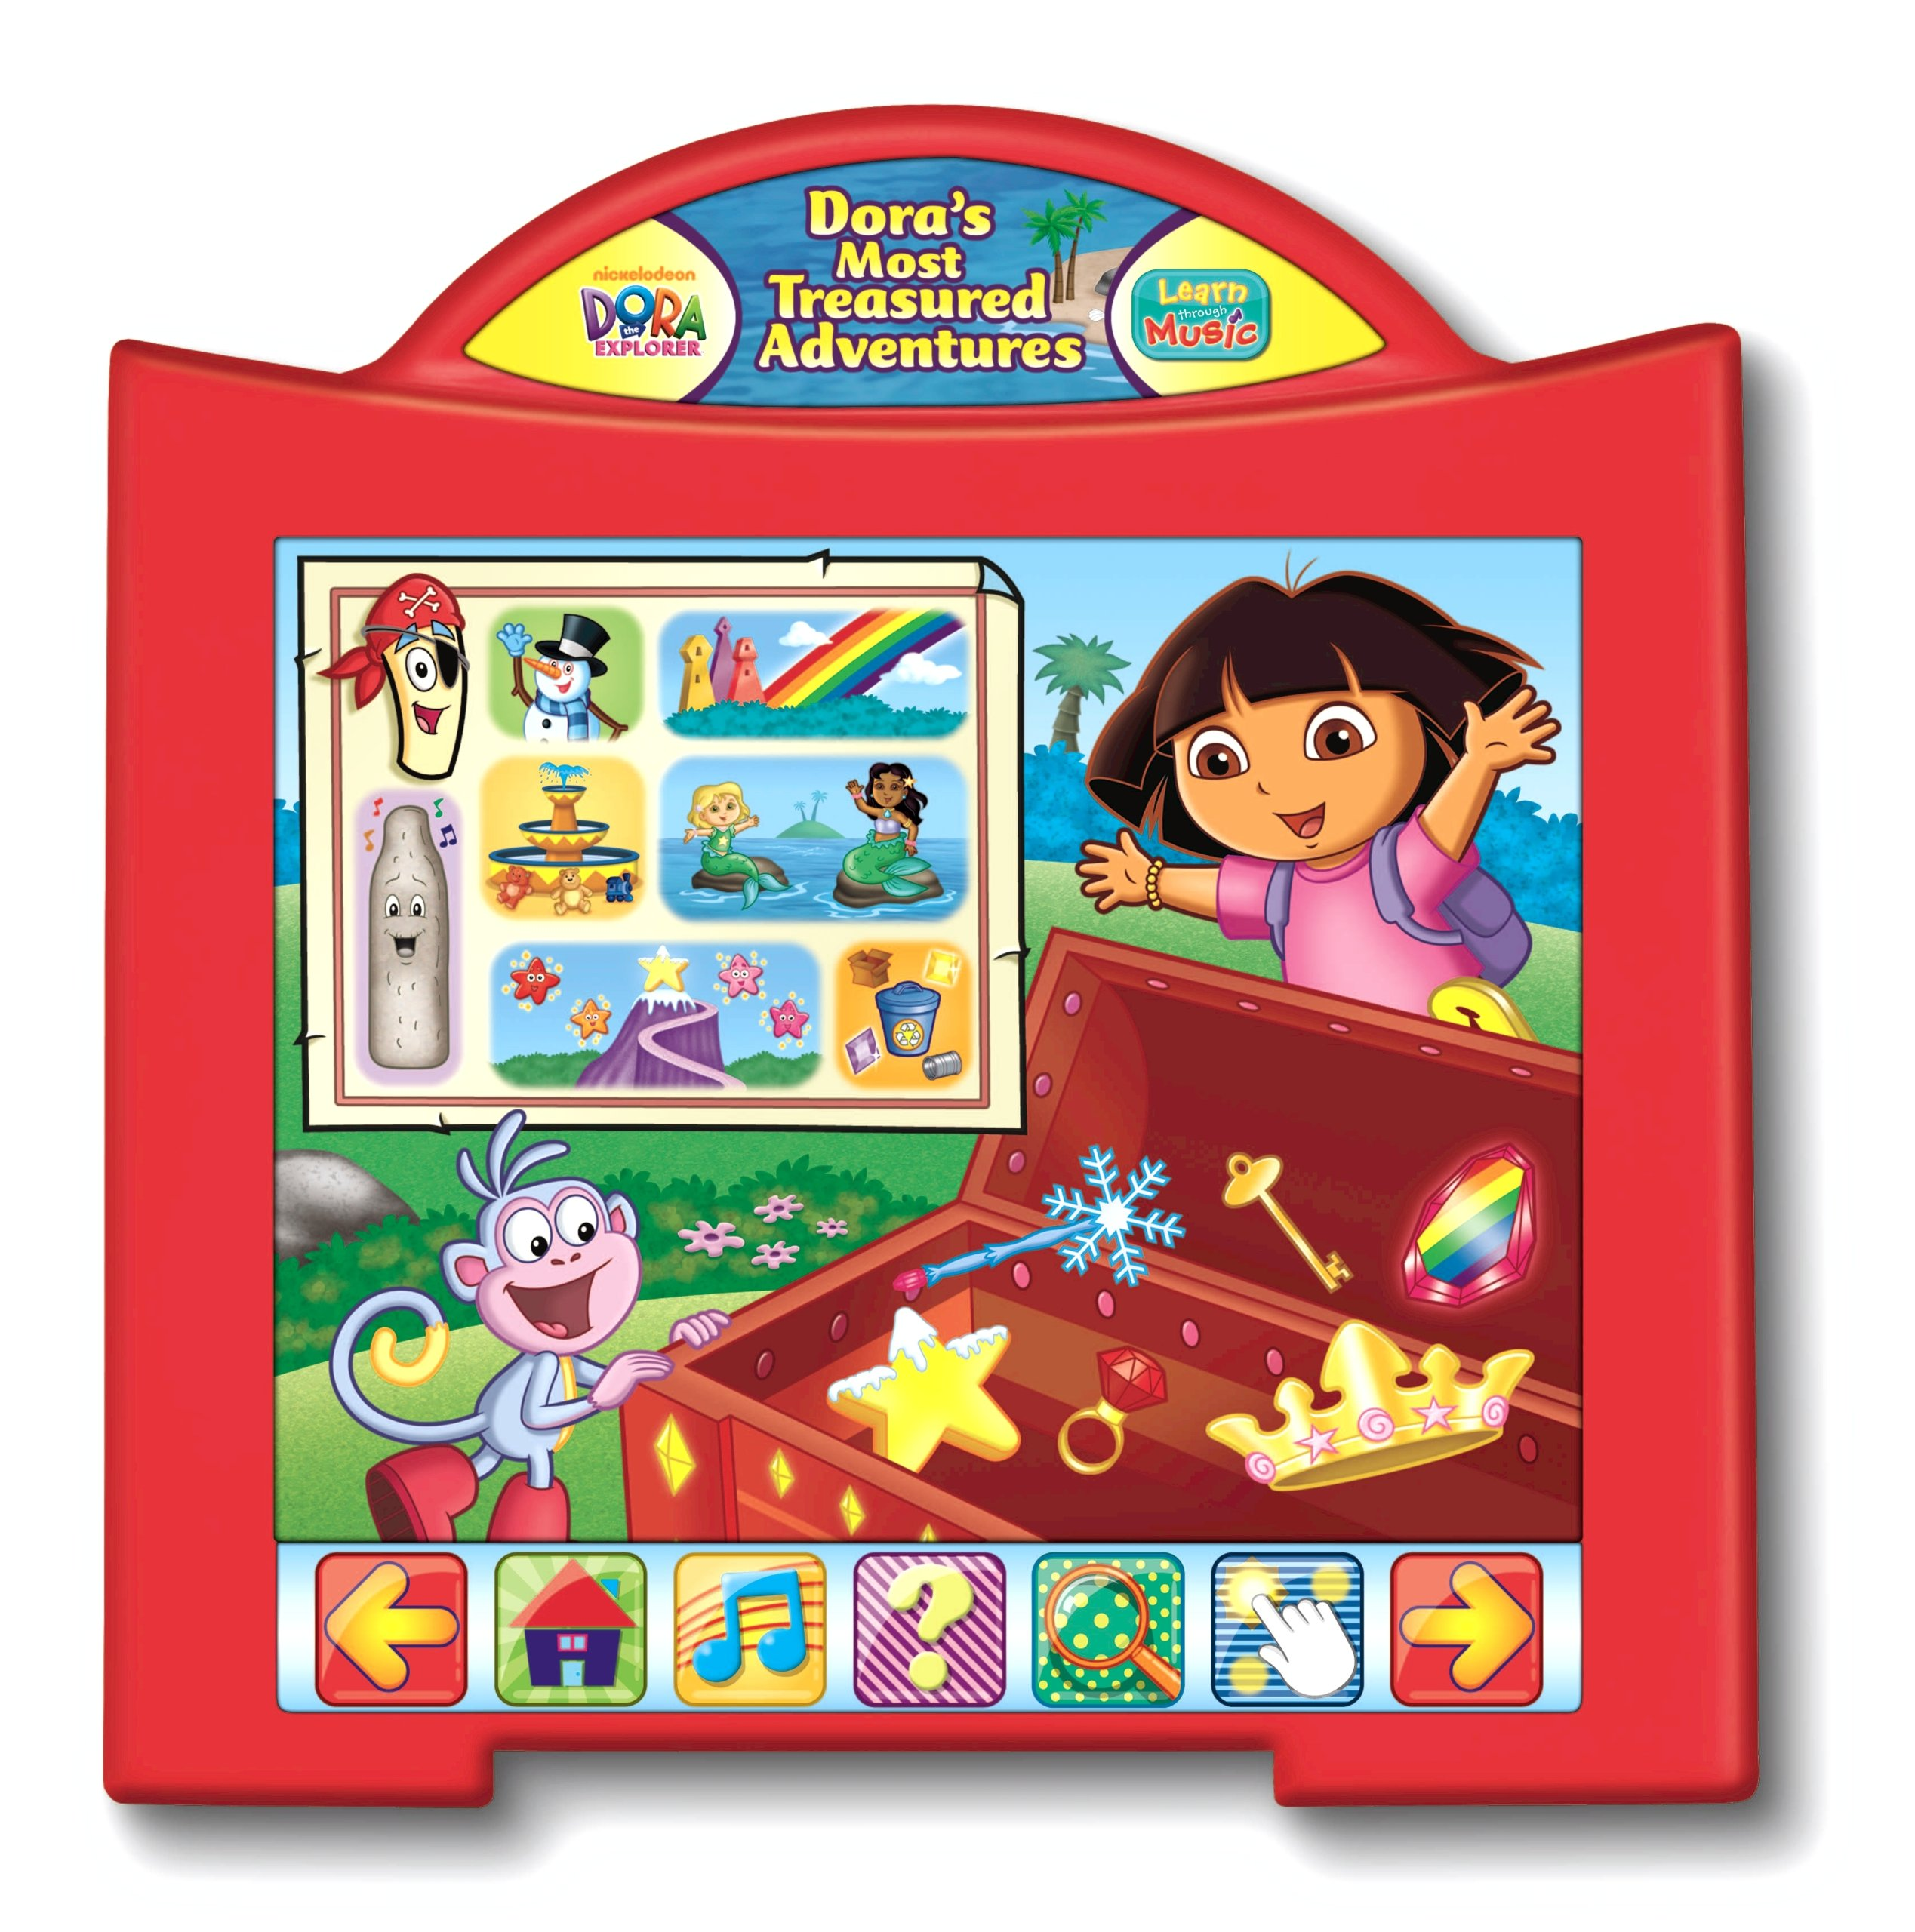 Fisher-Price Learn Through Music Touchpad Software - Dora's Most Treasured Adventures by Fisher-Price (Image #1)